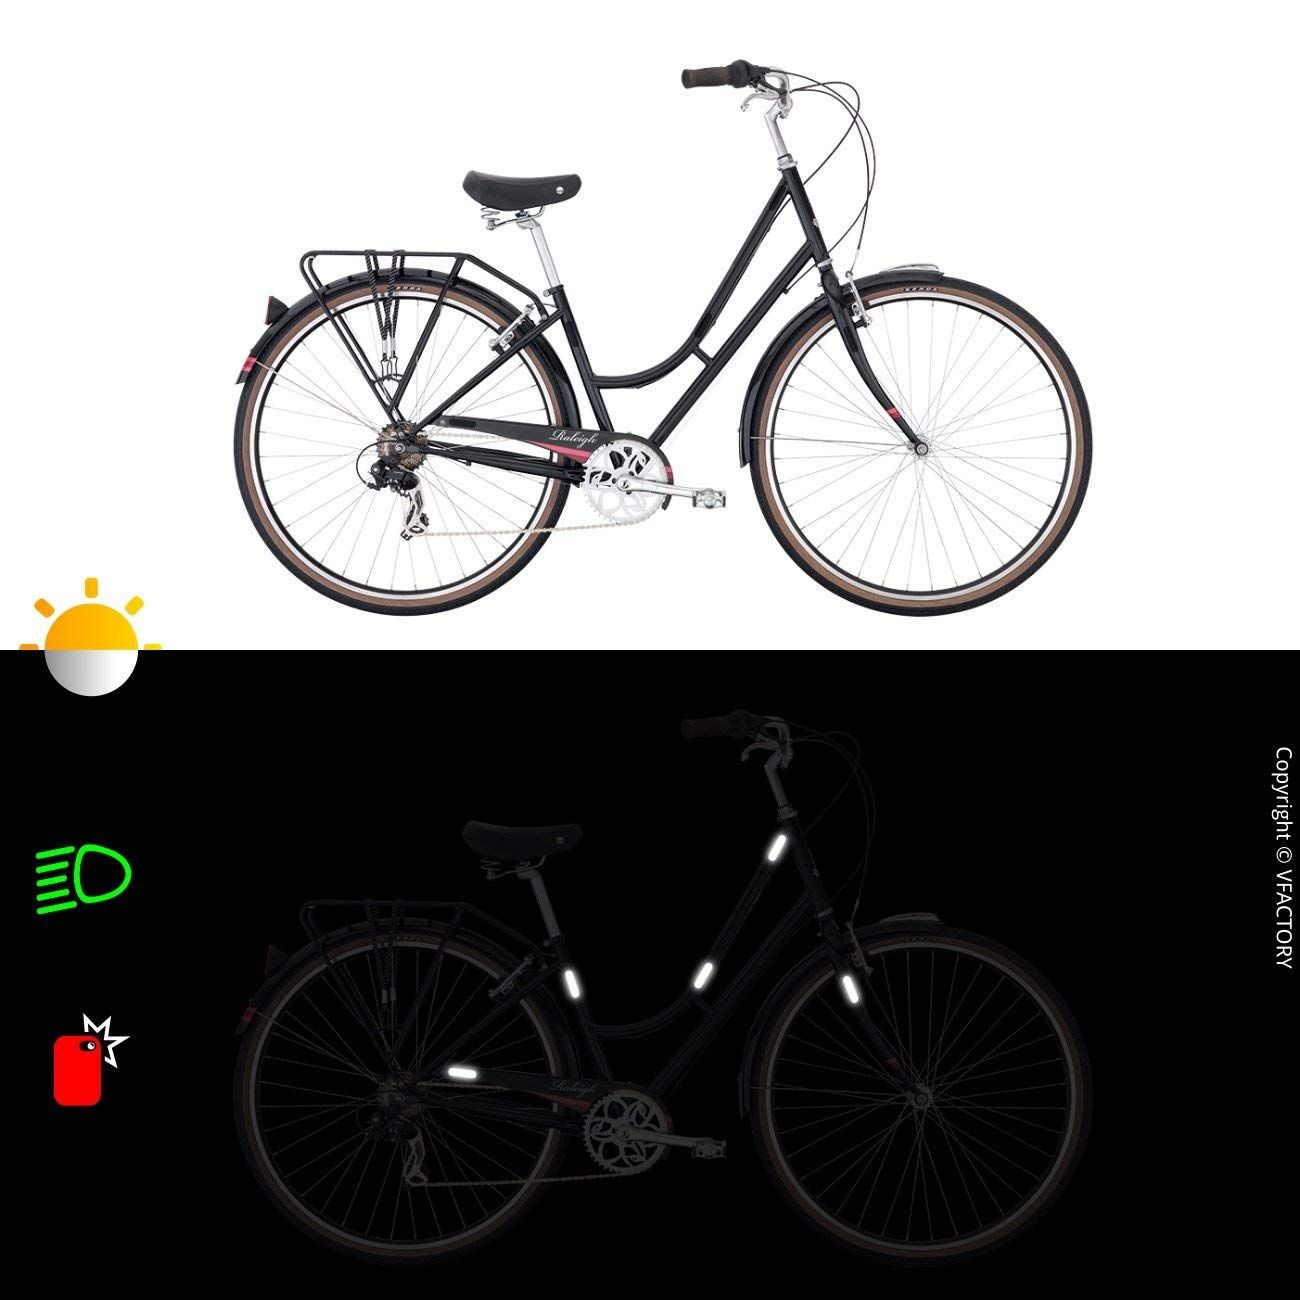 7 x 1,8 cm Night visibility safety B REFLECTIVE, 4 Pack Black 10 retro reflective stickers kit Universal adhesive for Bike//Stroller//Buggy//Helmet//Motorcycle//Scooter//Toys